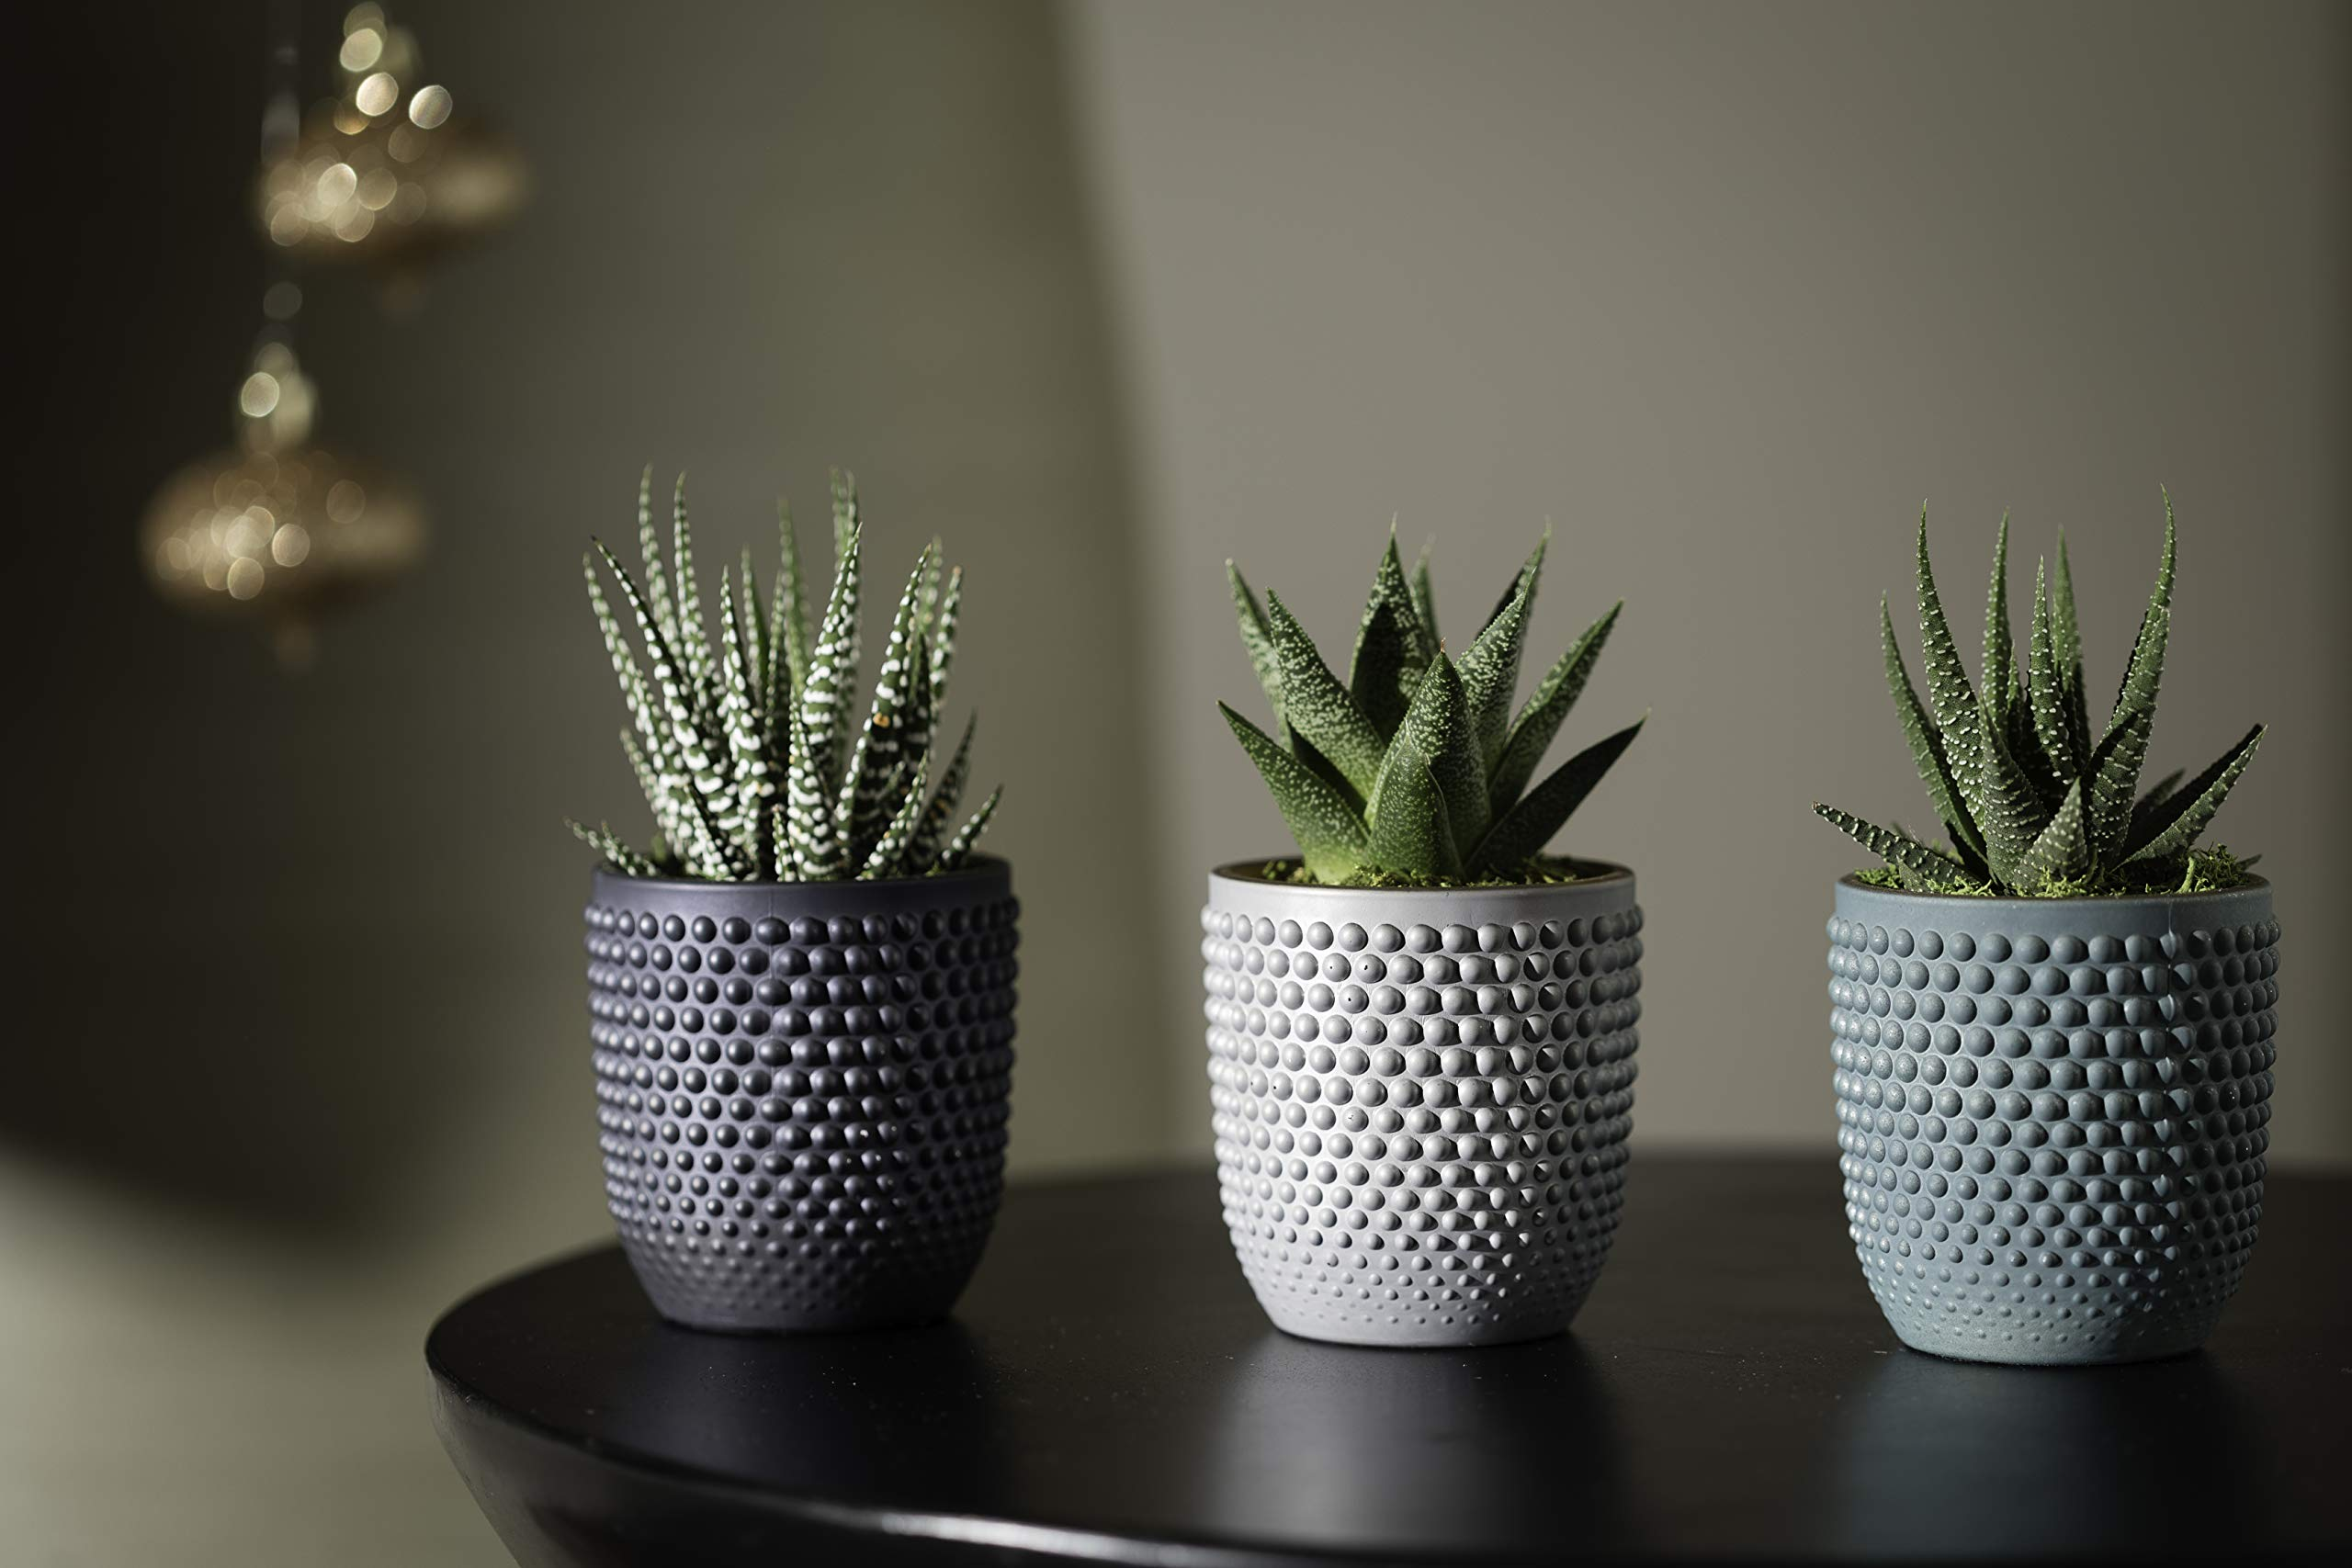 Live Succulents in Blue, Teal, and Grey Ceramic Containers Set of 3, From Hallmark Flowers